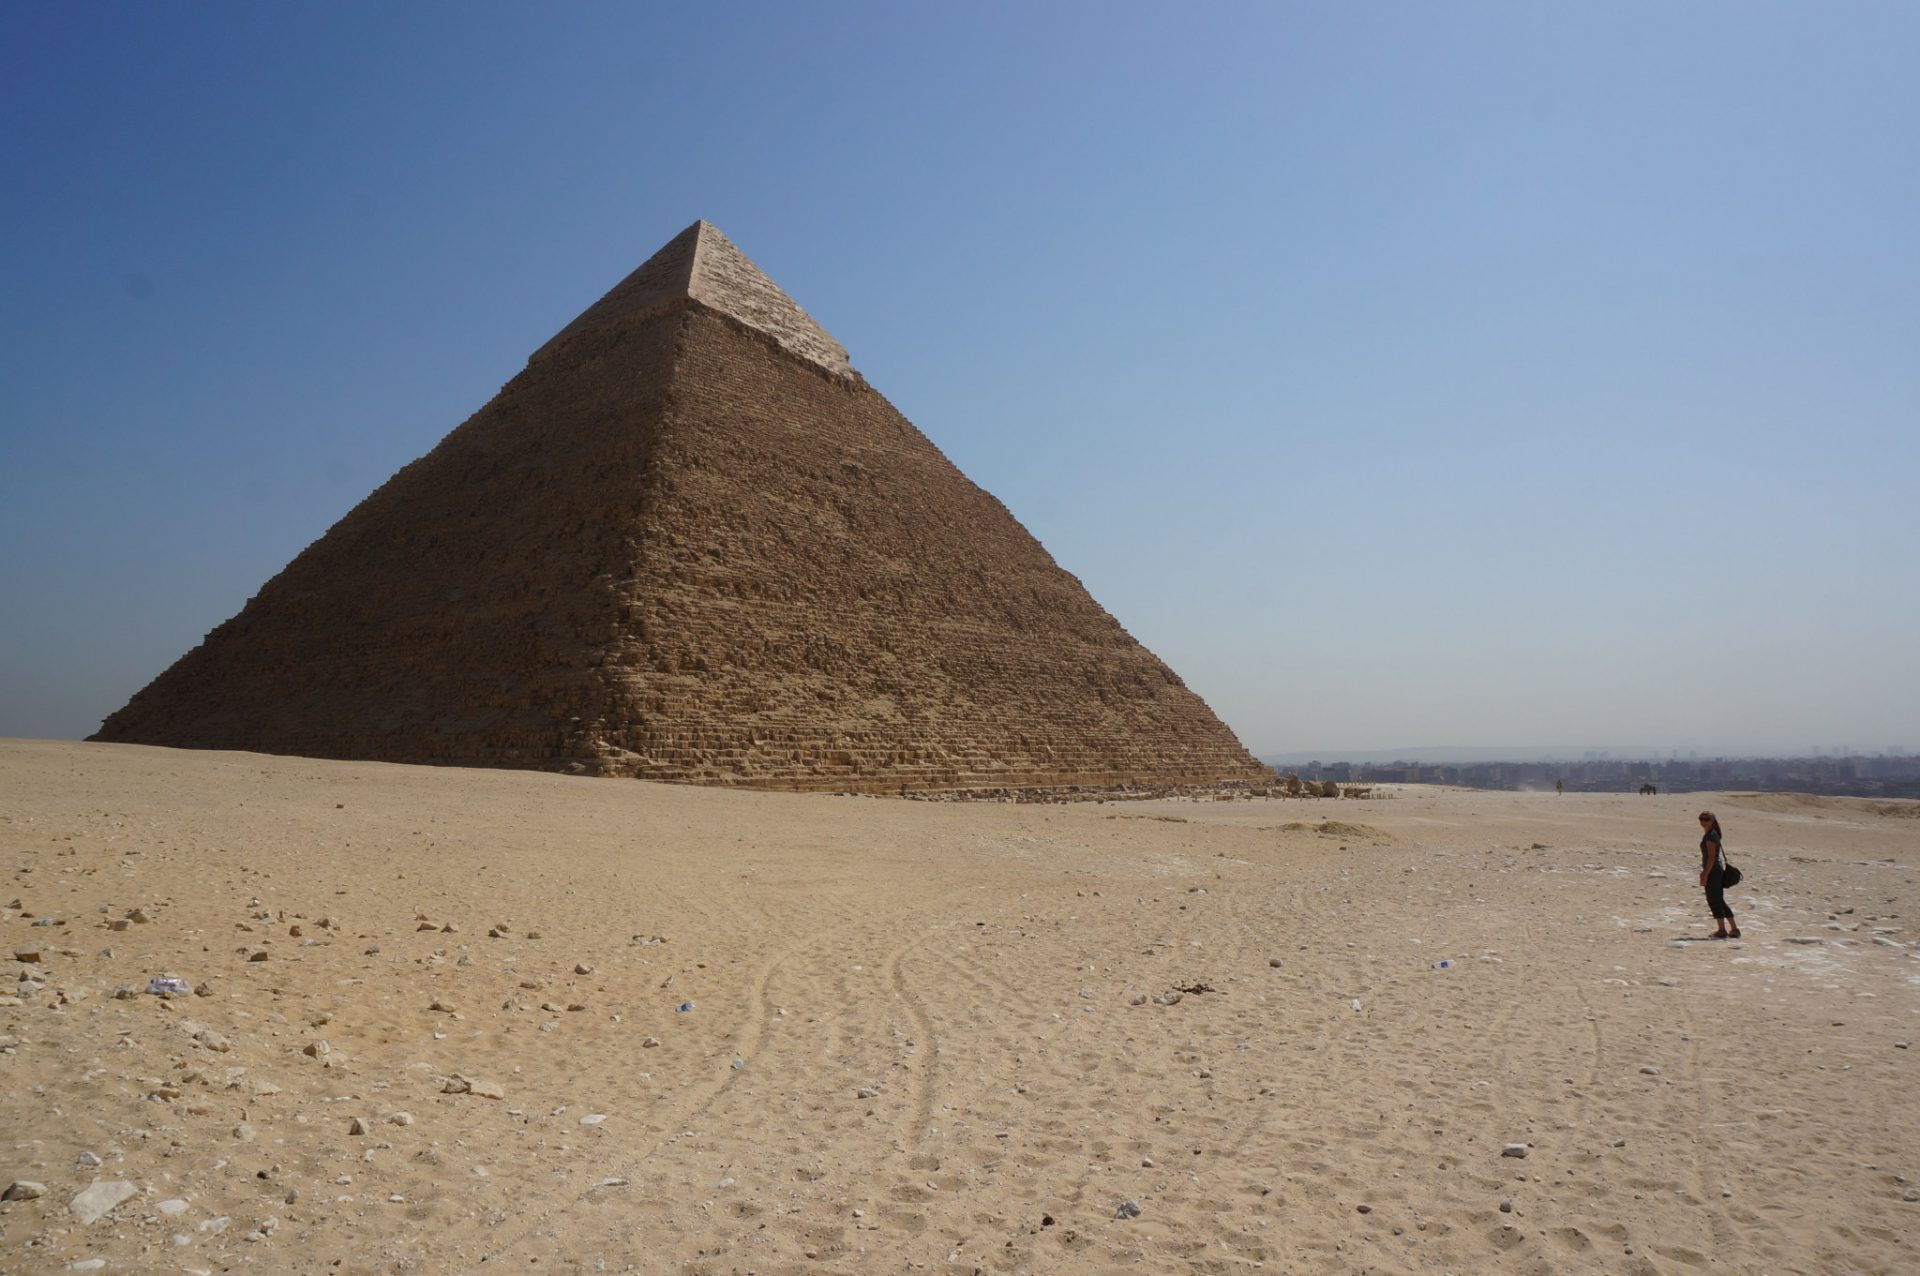 Alone at the Great pyramids in the summer with no tourists in sight